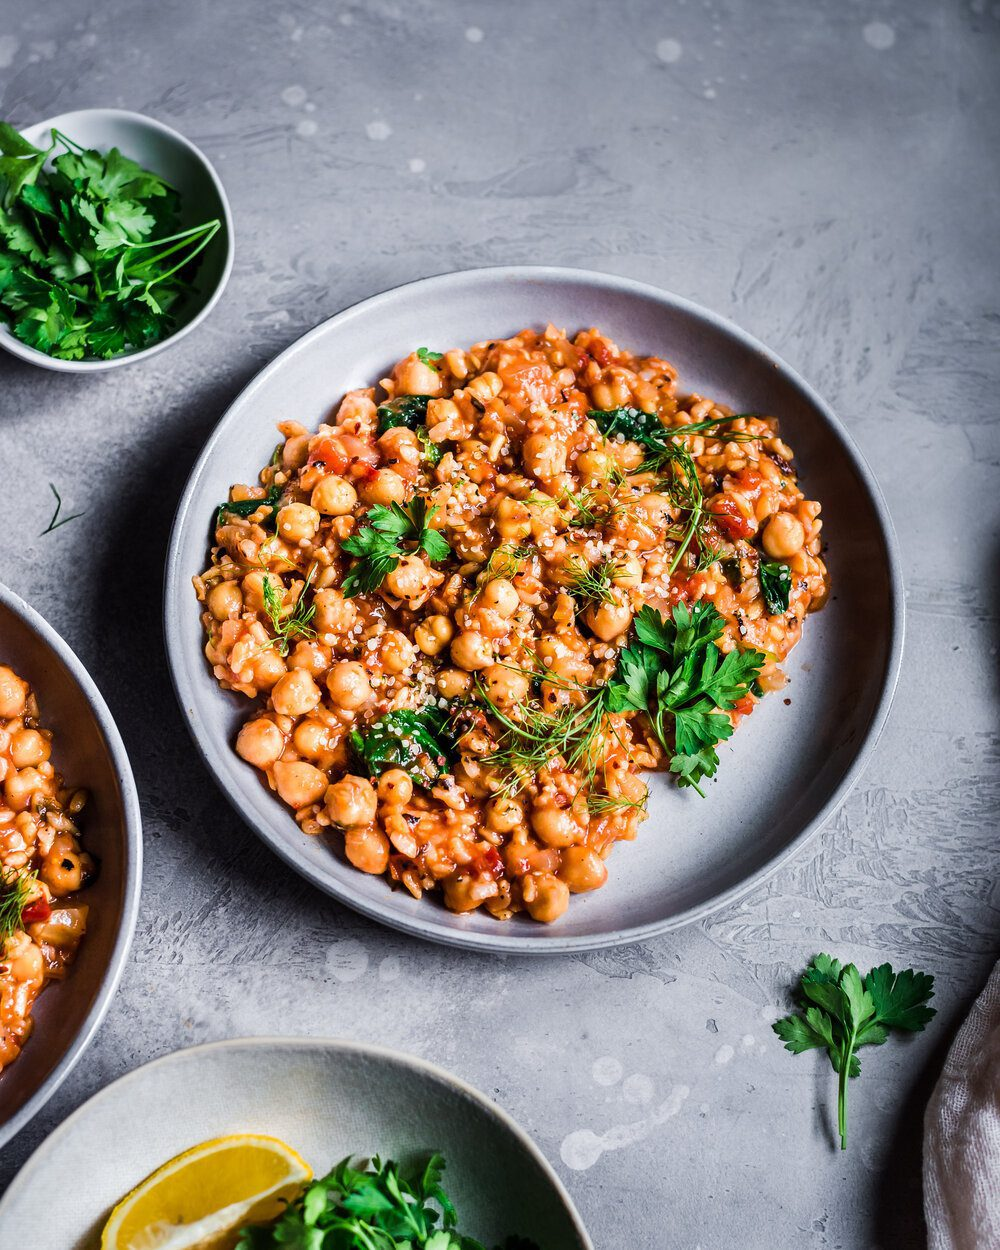 Instant Pot Fennel, Chickpea, and Brown Rice Stew